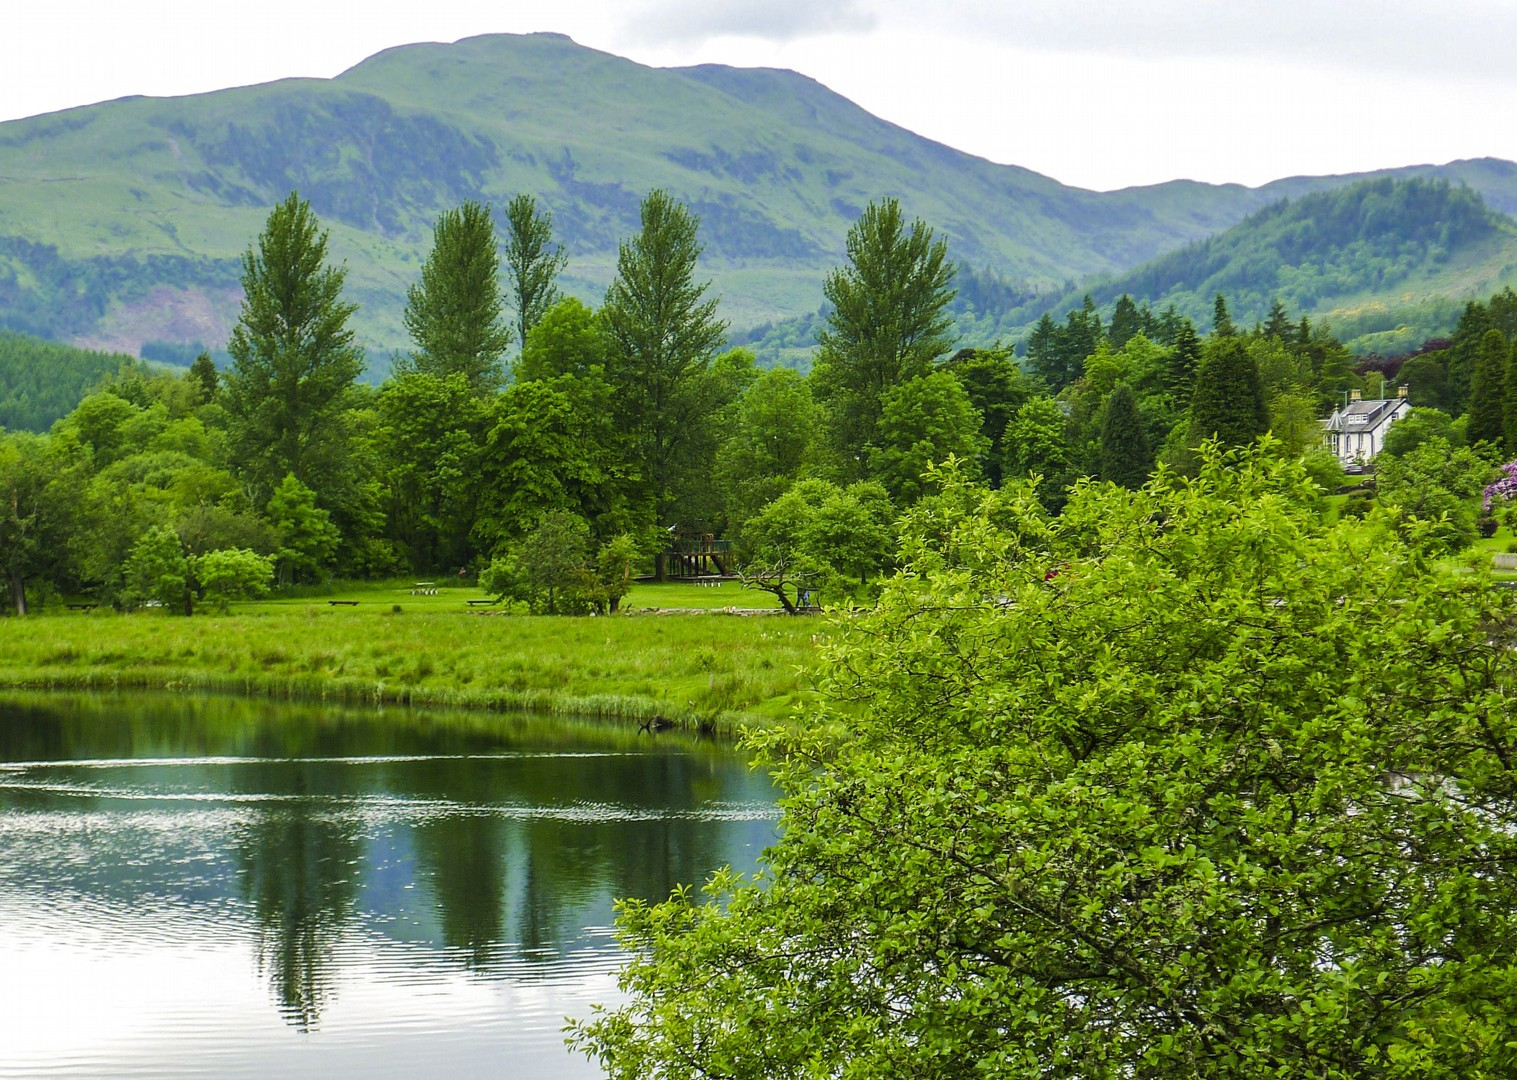 scottish-cycling-mountains-lakes-rivers-whiskey-distillery-bike-holiday.jpg - UK - Scotland - Lochs and Glens - Self-Guided Family Cycling Holiday - Family Cycling